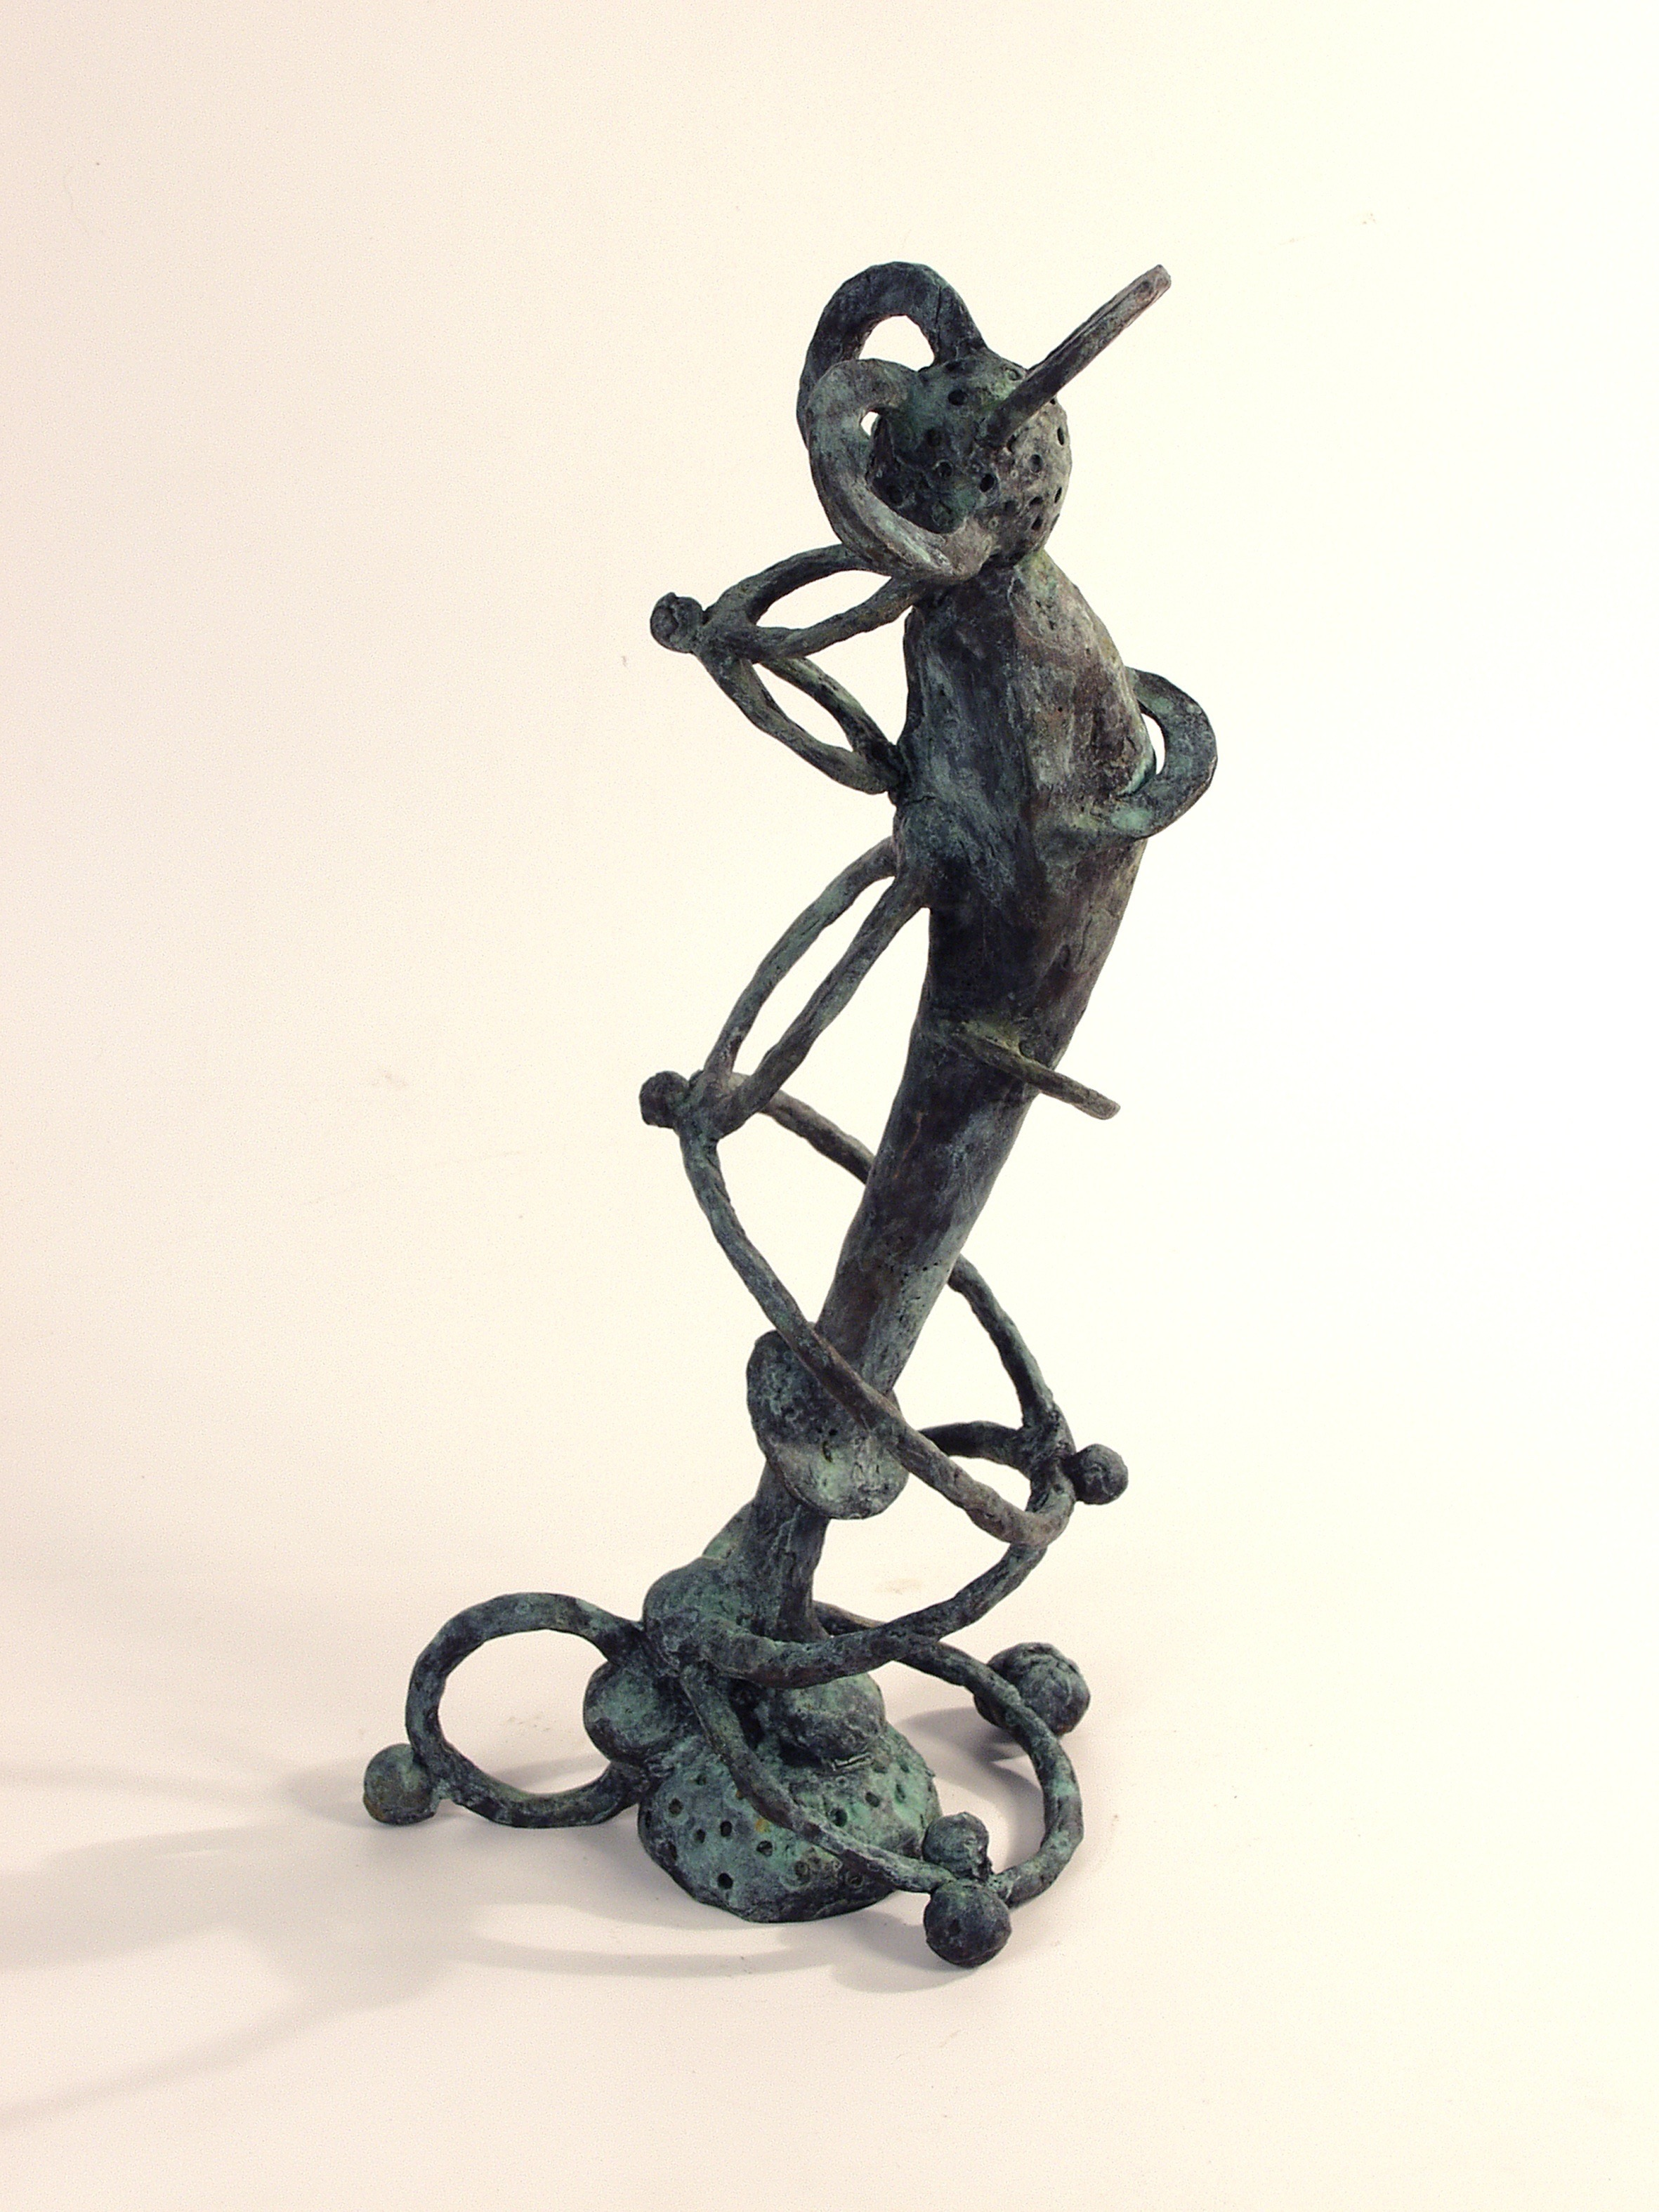 Dream Stalker, bronze (edition of 3), 50 X 17.5 X 22 cm, 2002